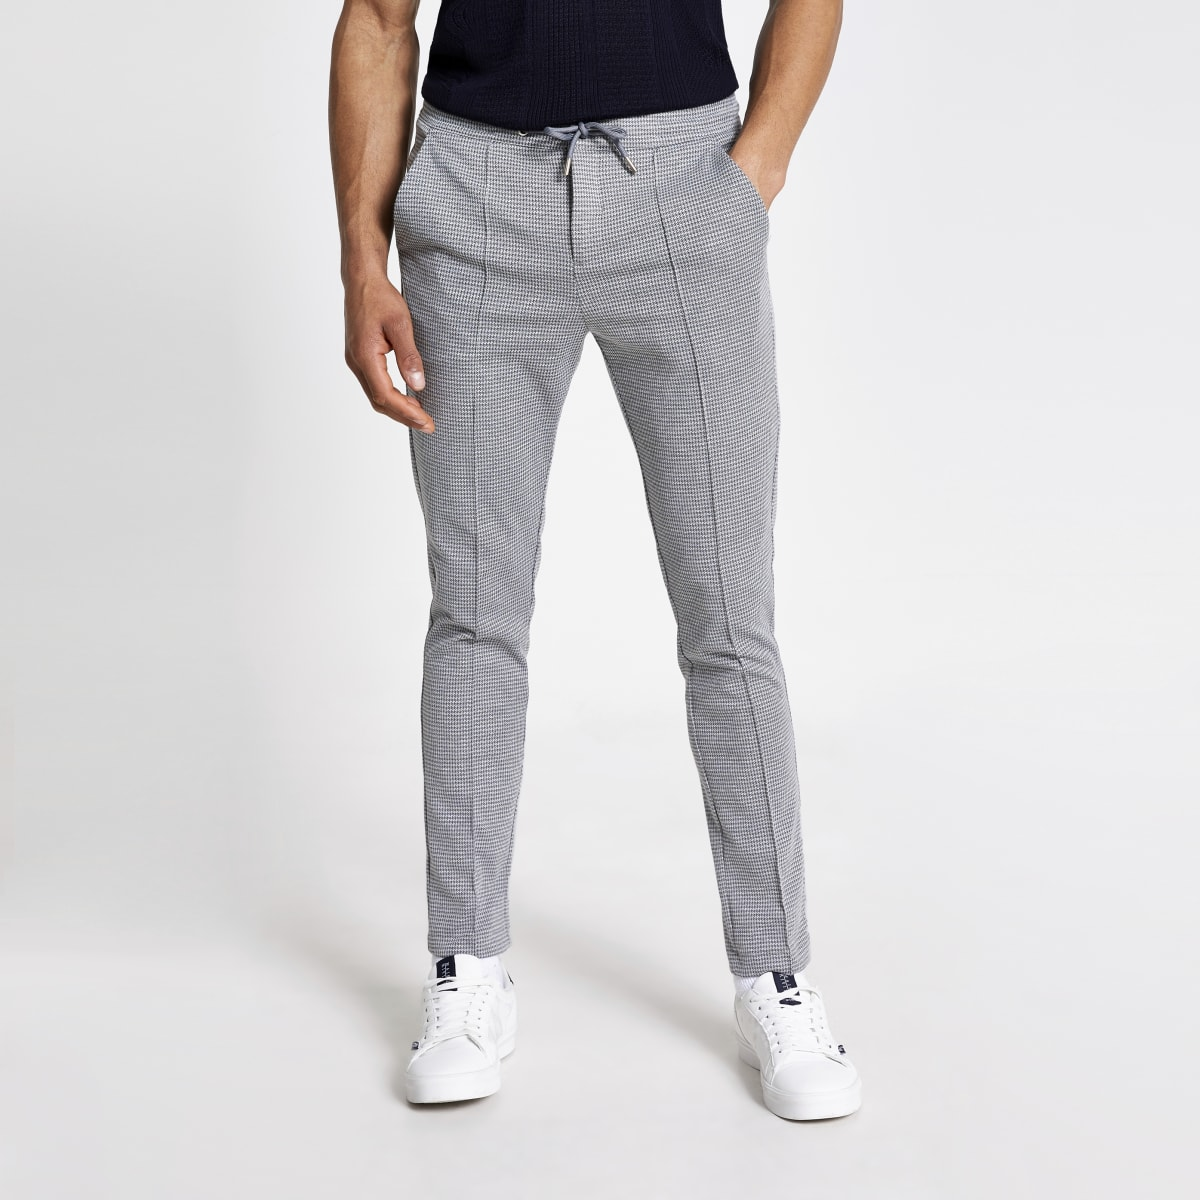 The Grey Seoul Skinny Smart Joggers